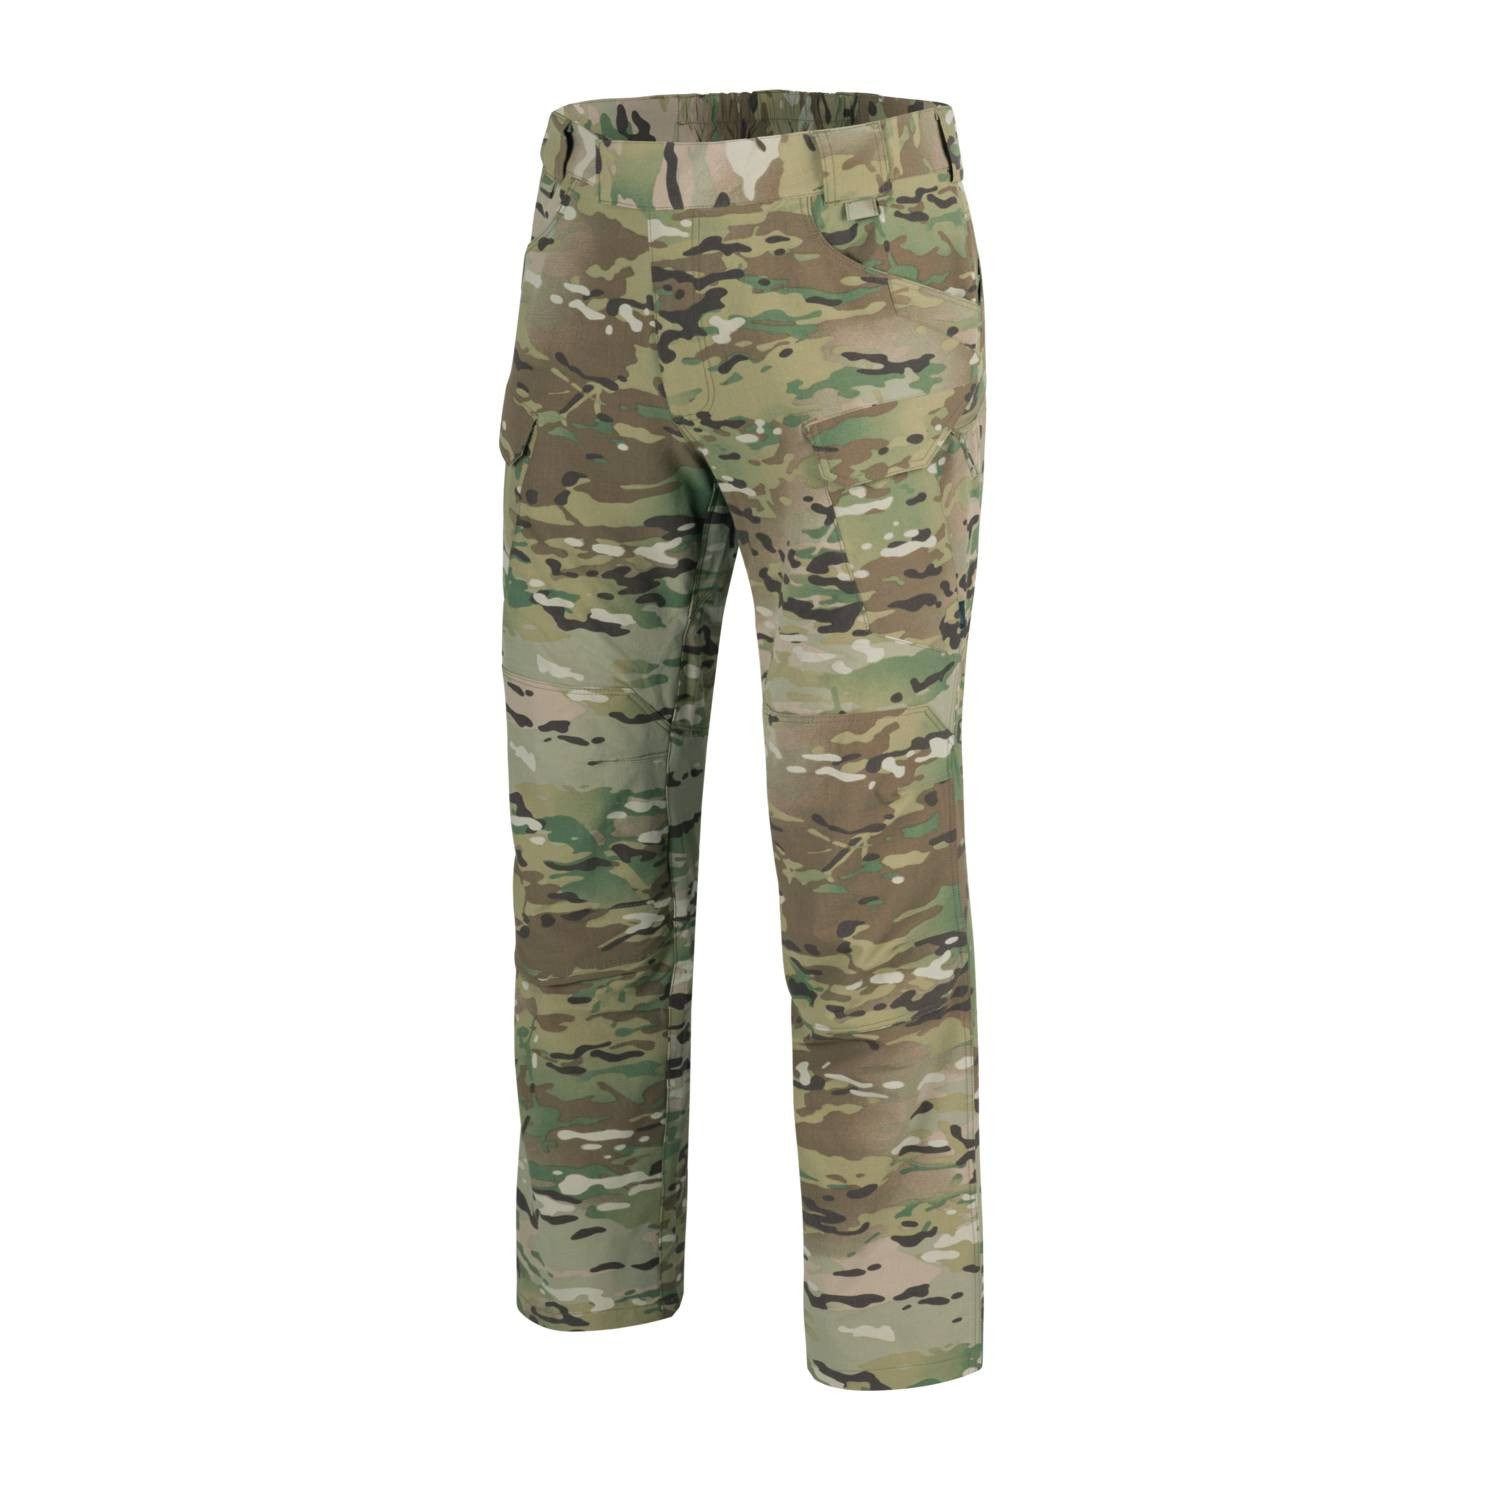 Nohavice OUTDOOR TACTICAL® softshell MULTICAM